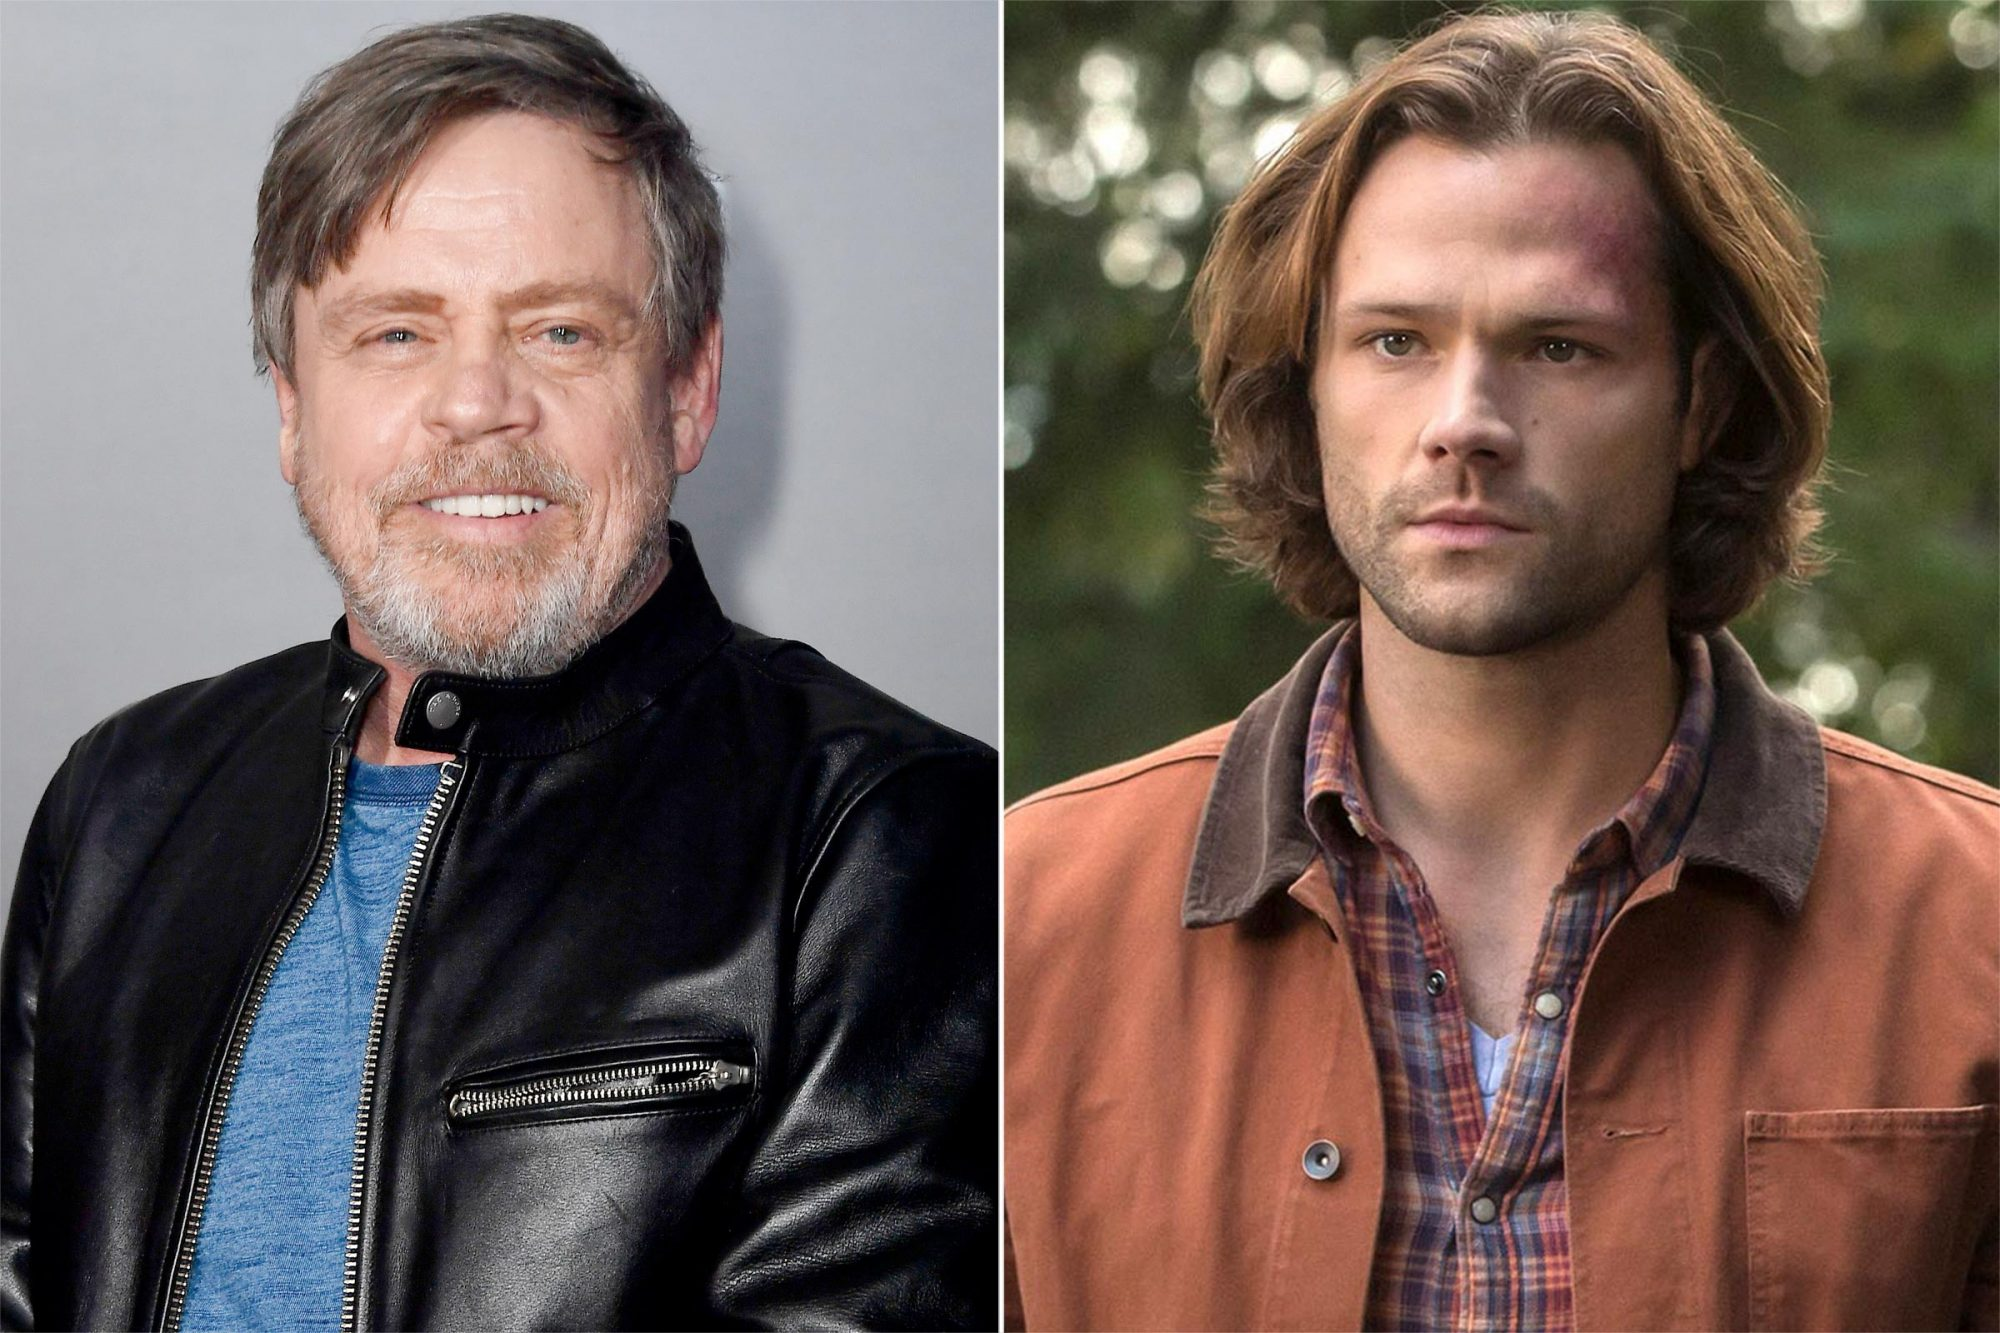 Mark Hamill / Supernatural